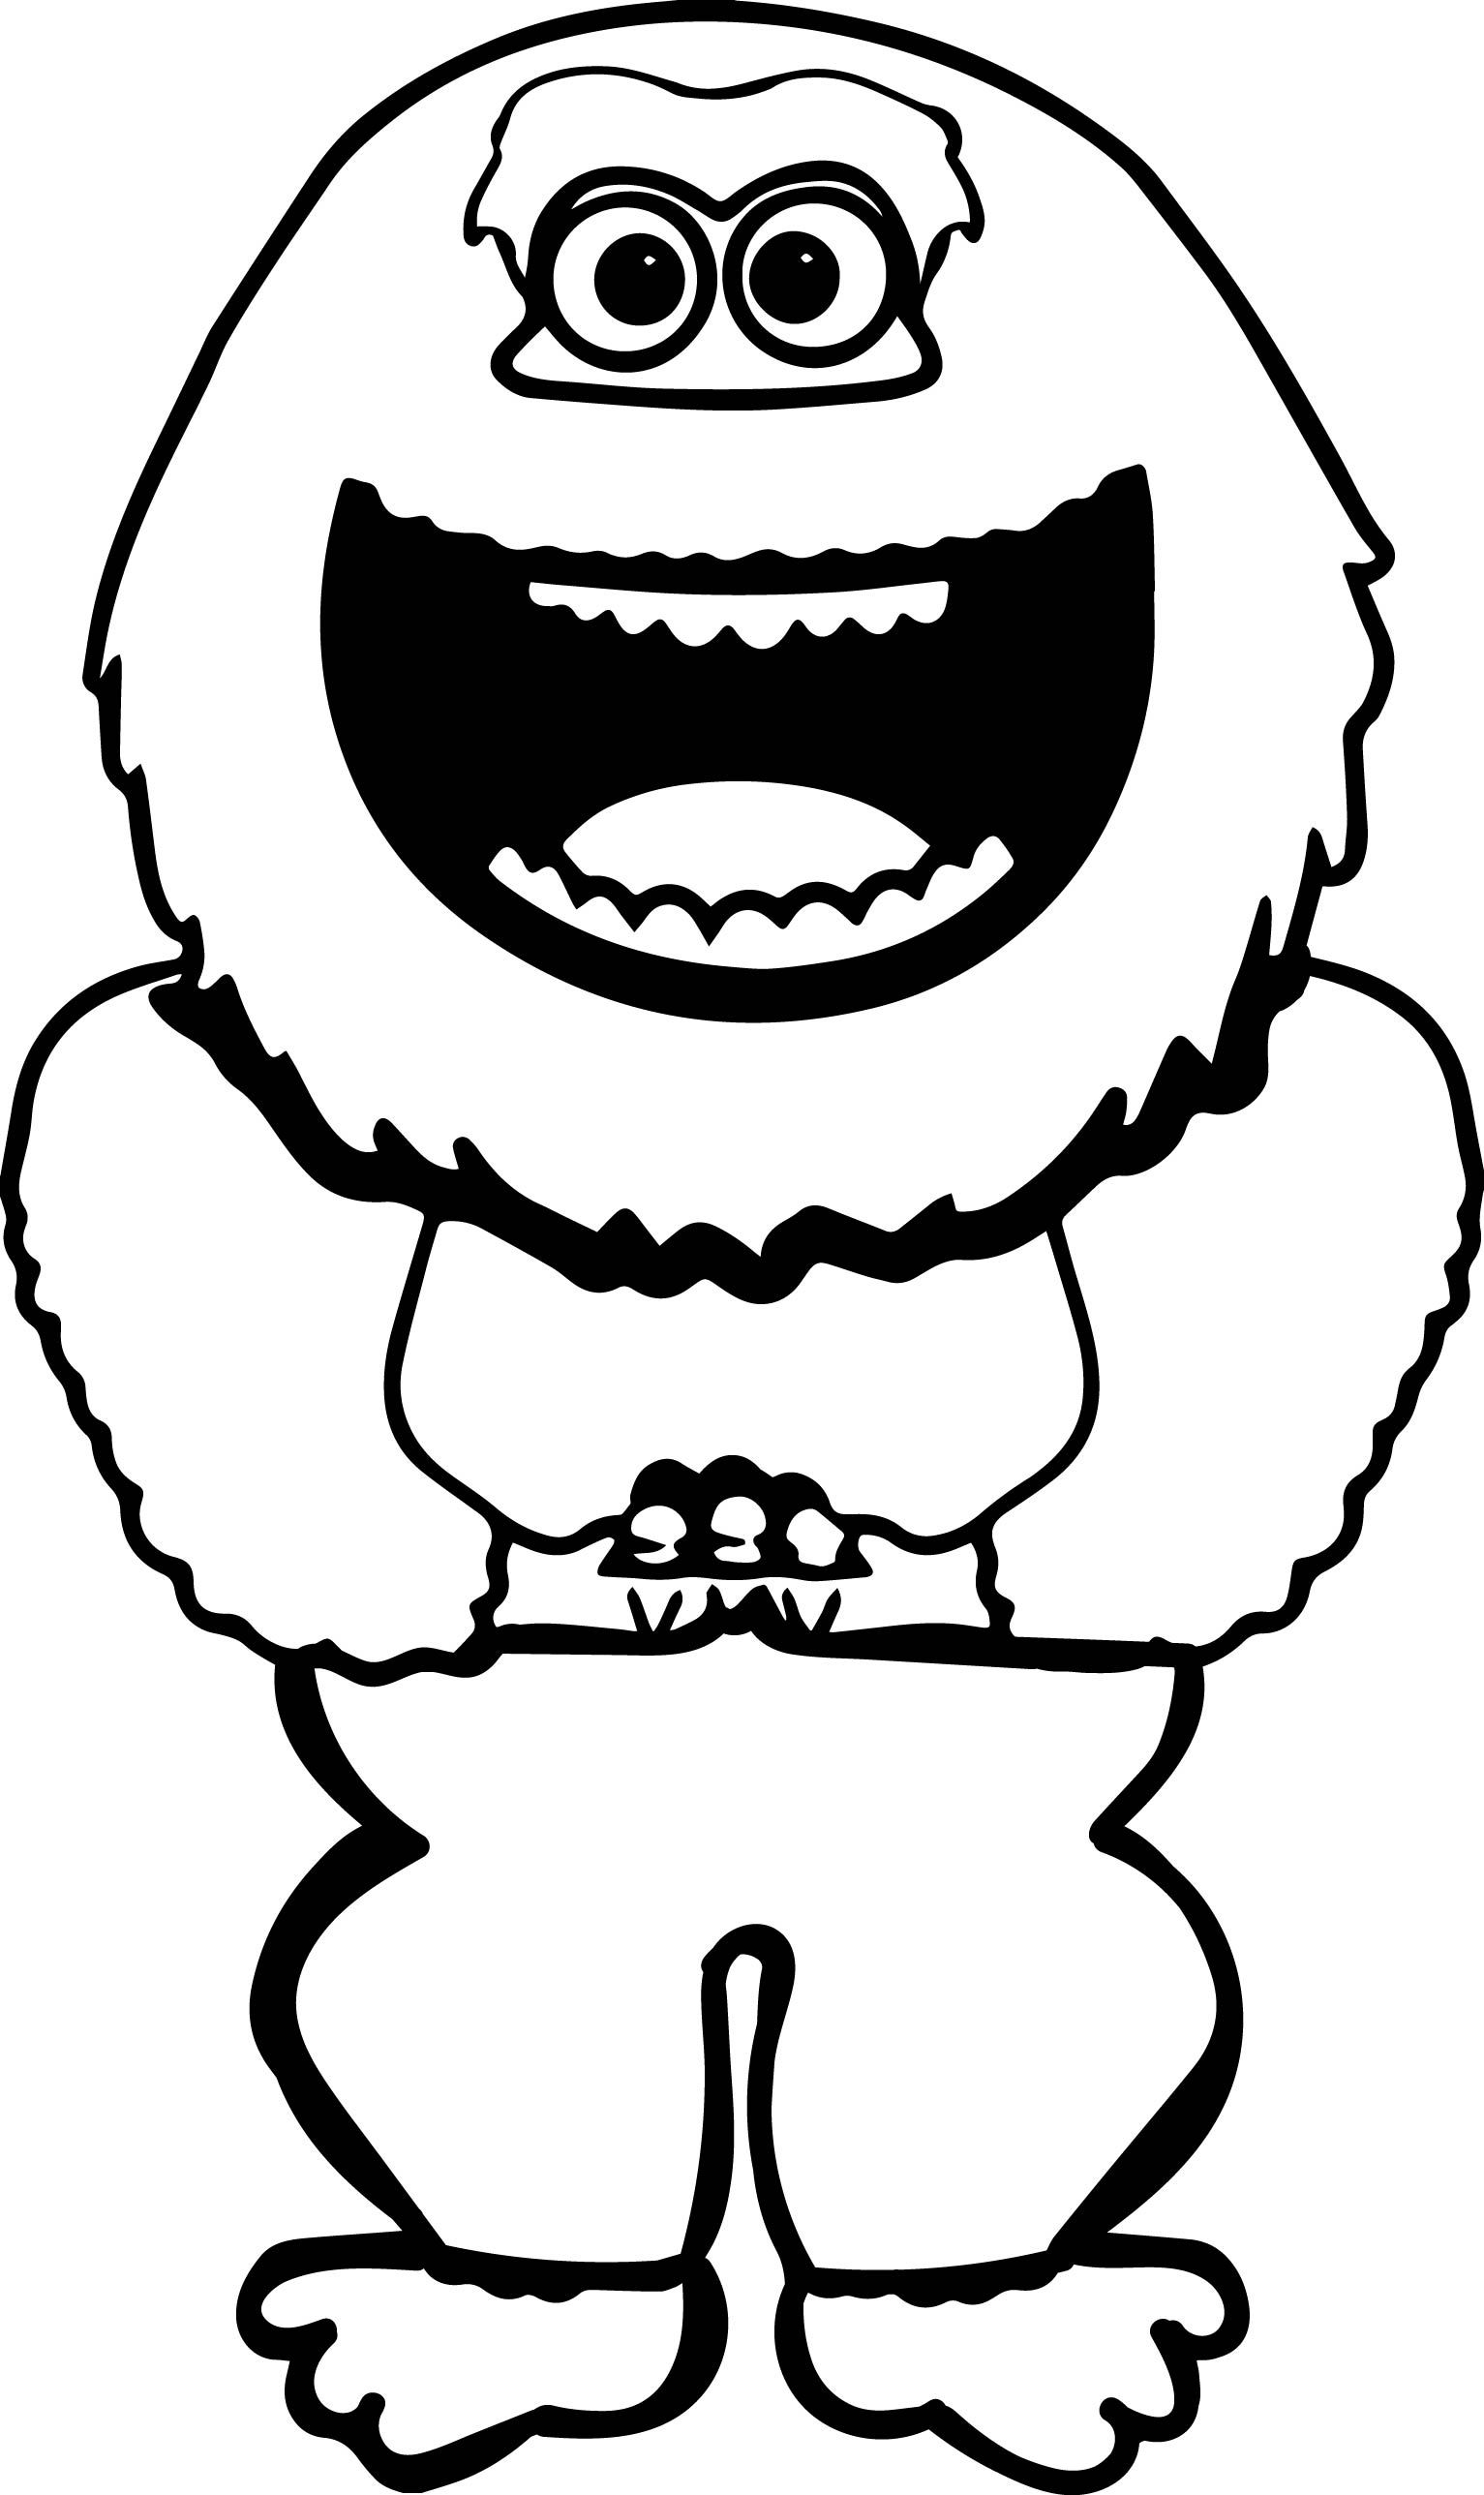 Cute Yeti Coloring Page Amazing Design